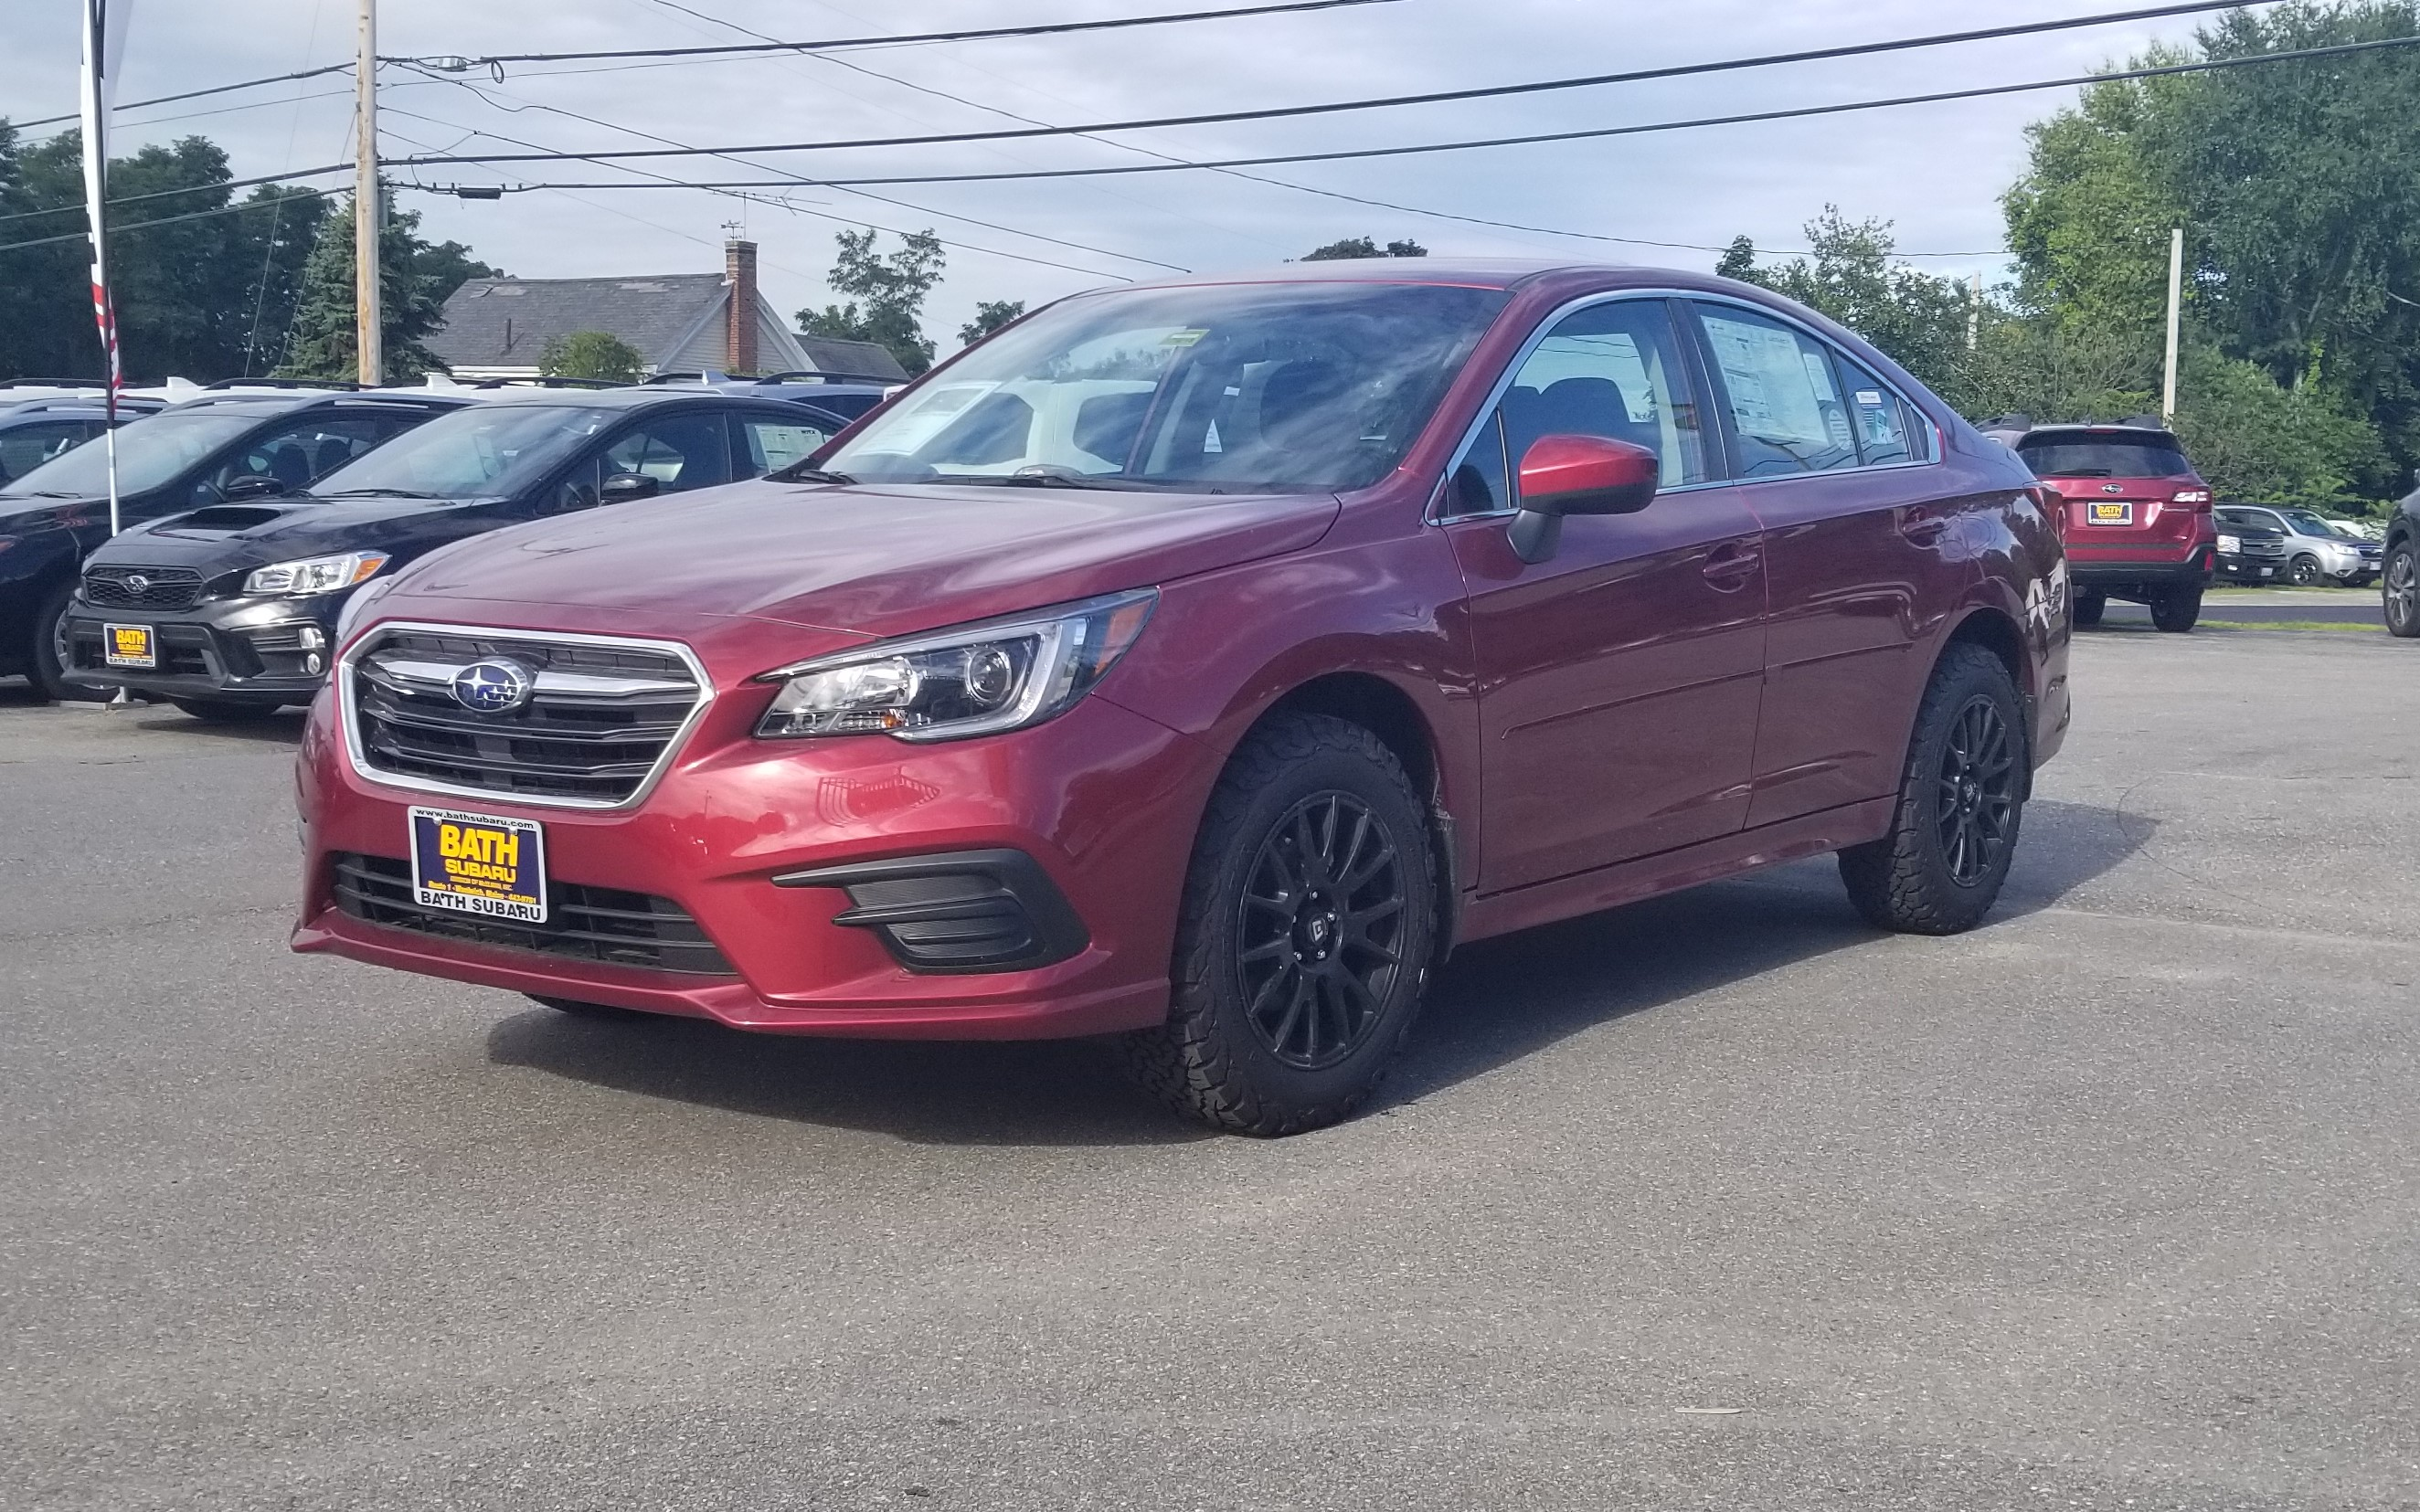 New 2018 Subaru Legacy 2.5i Premium with Adventure Package Sedan Portland Maine